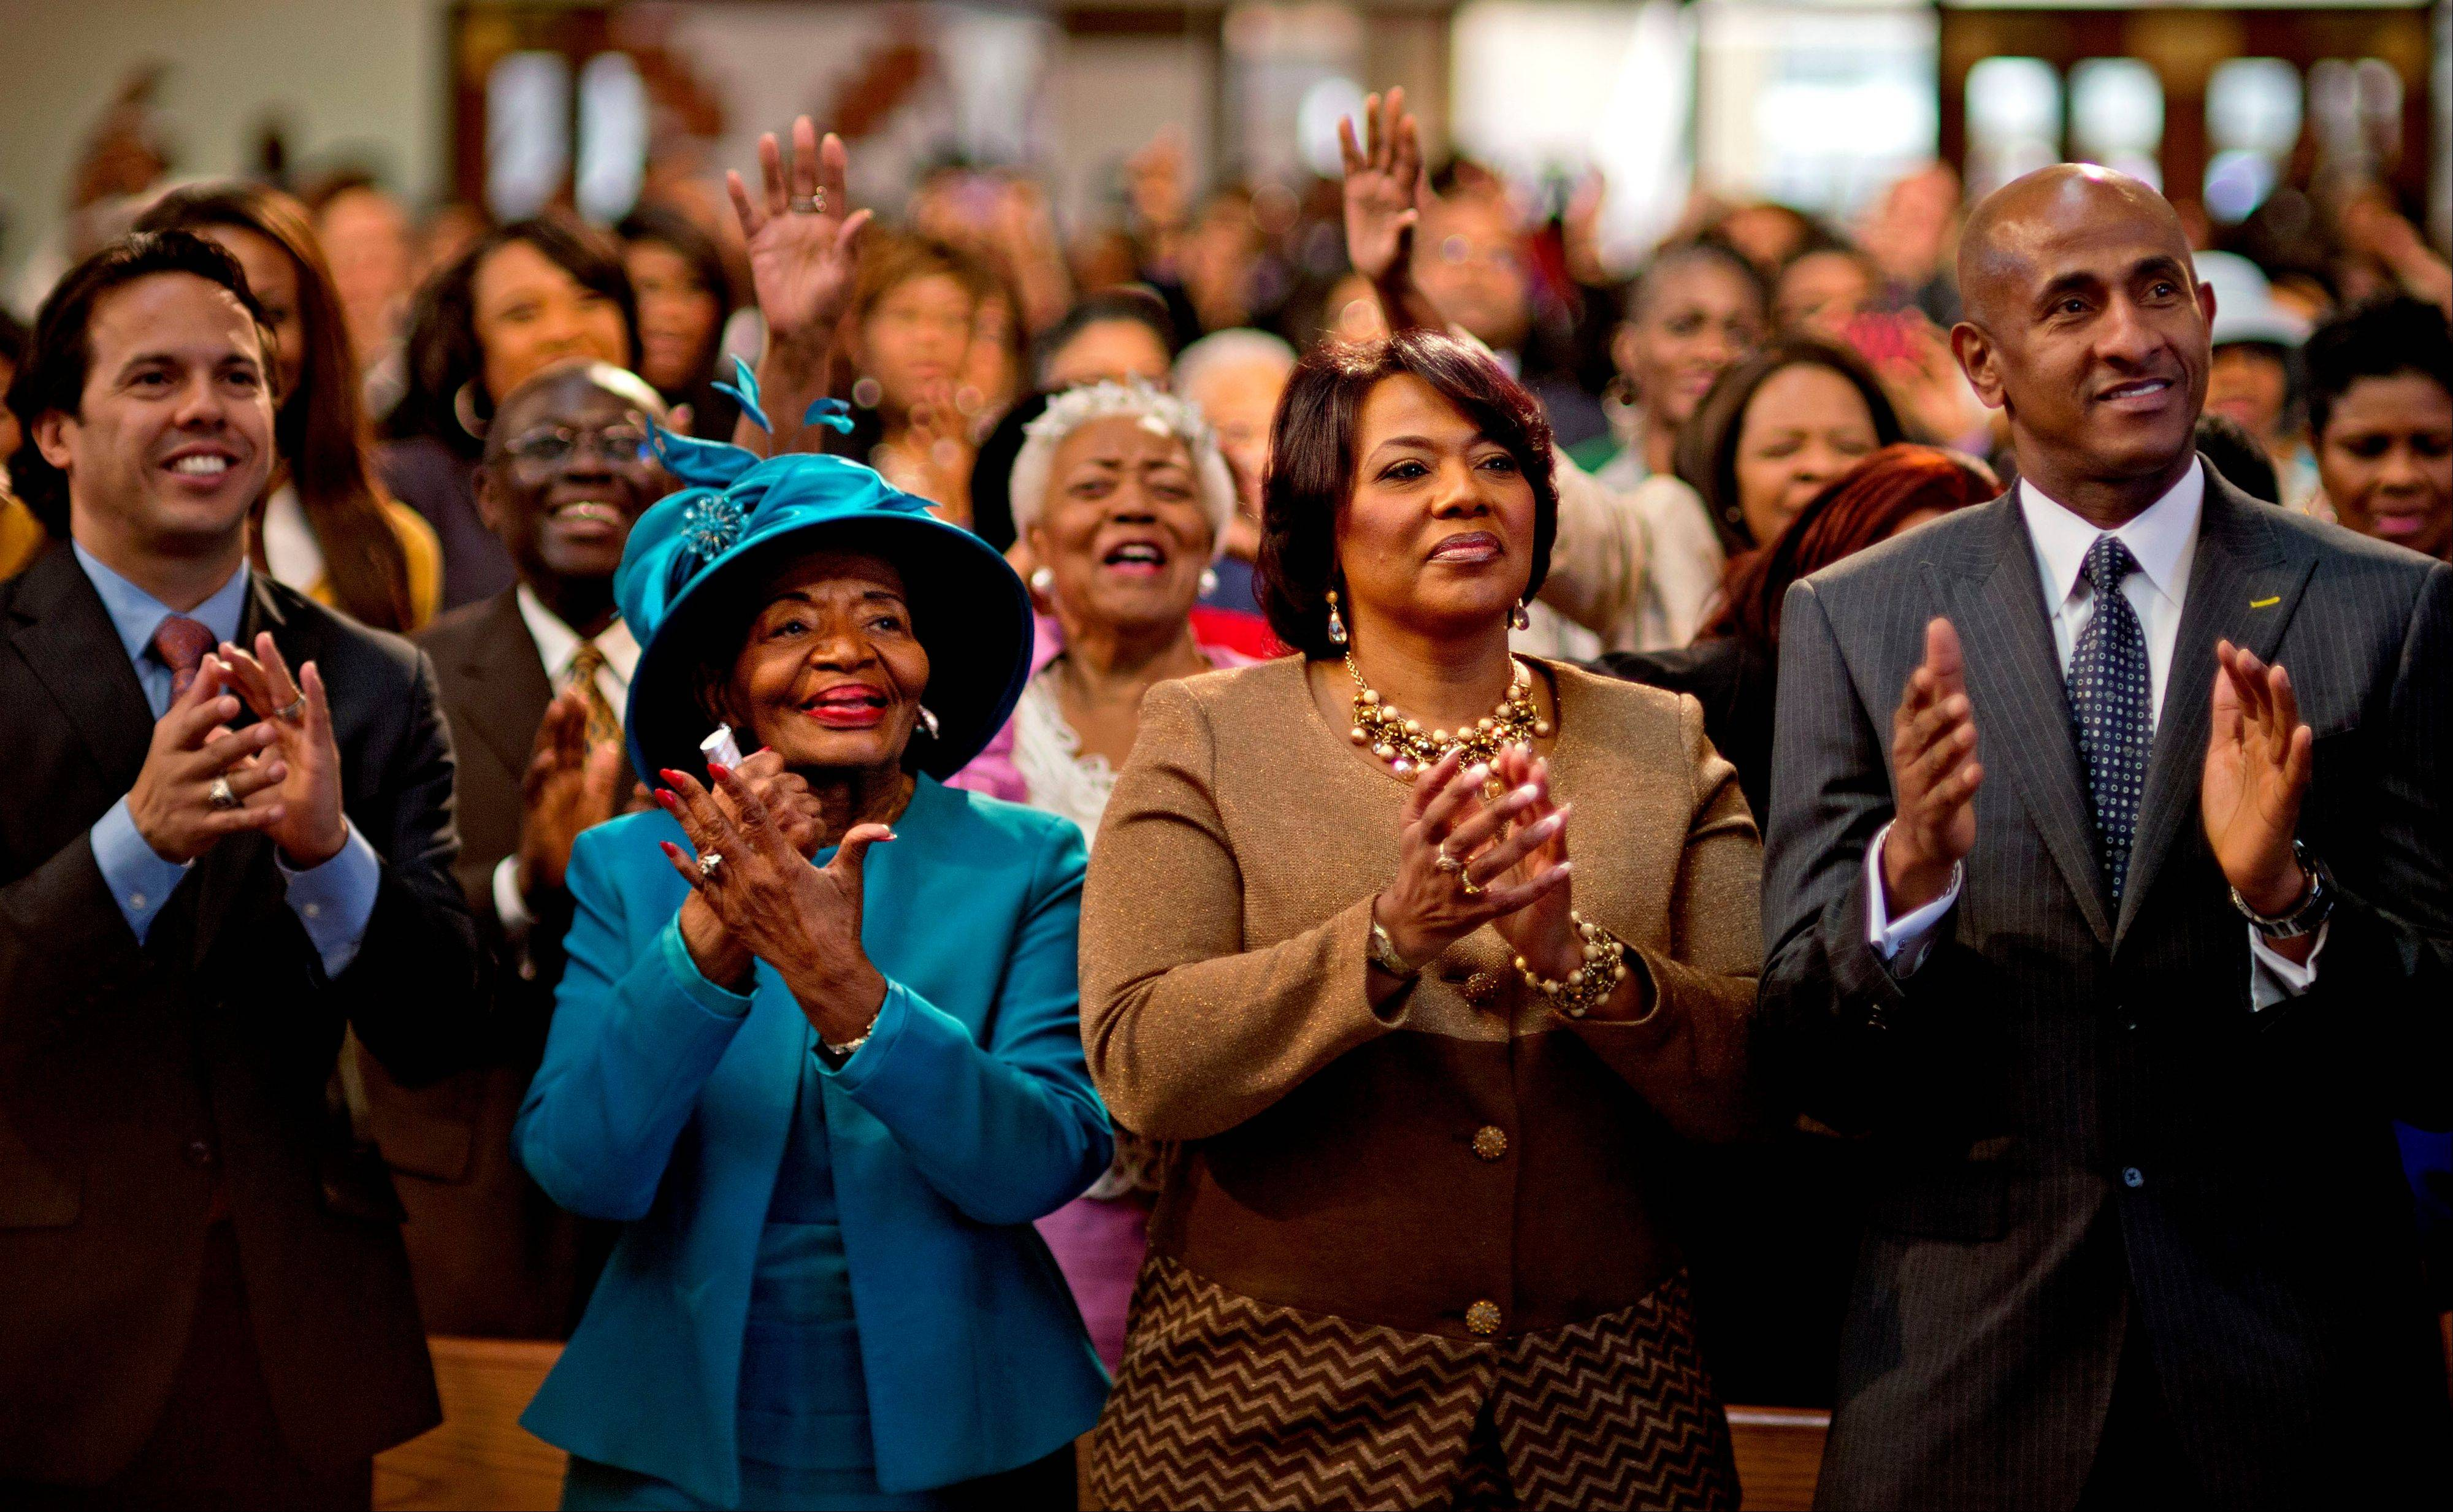 Bernice King, center right, and Christine King Farris, center left, the daughter and sister of Dr. Martin Luther King Jr., applaud while watching a broadcast as President Barack Obama is inaugurated following the Dr. Martin Luther King Jr. holiday commemorative service at the Ebenezer Baptist Church in Atlanta Monday, Jan. 21, 2013.